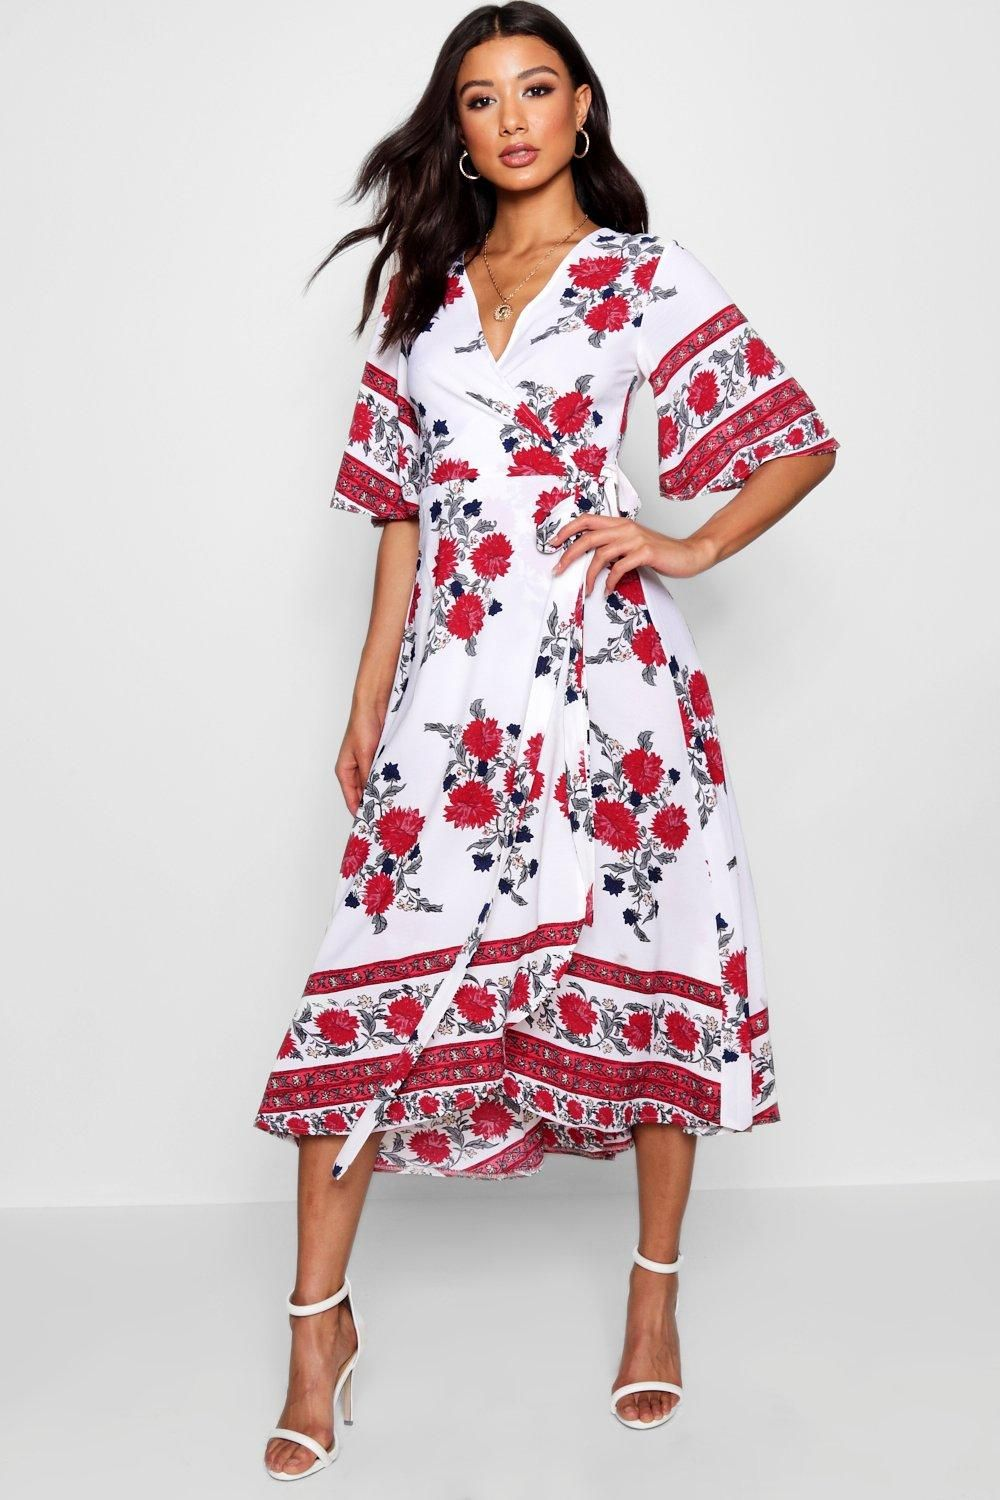 959d305947 Dresses are the most-wanted wardrobe item for day-to-night dressing. From  cool-tone whites to block brights